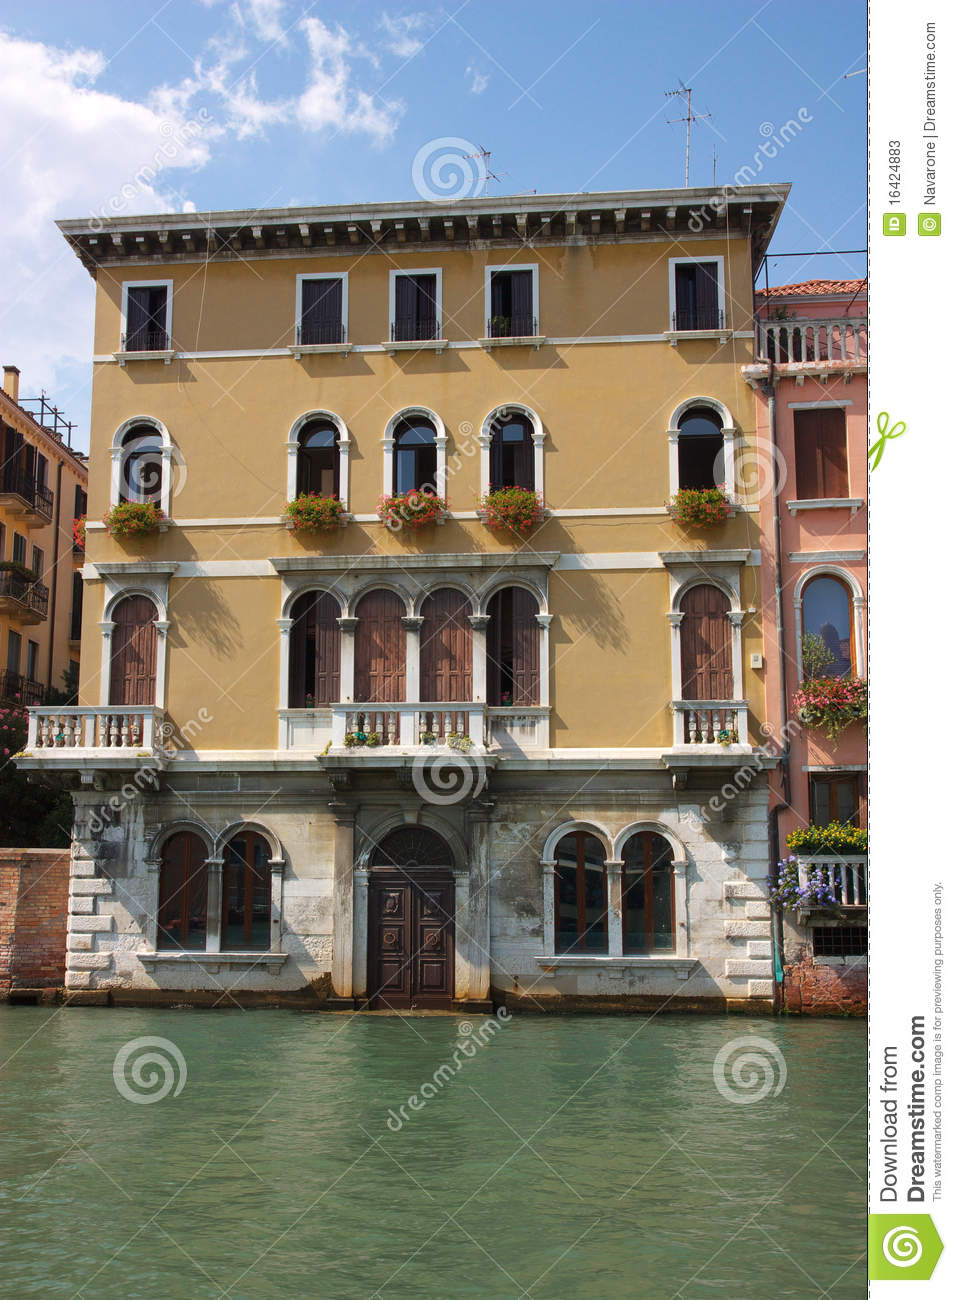 Old house on venice canal stock photos image 16424883 for Classic italian house